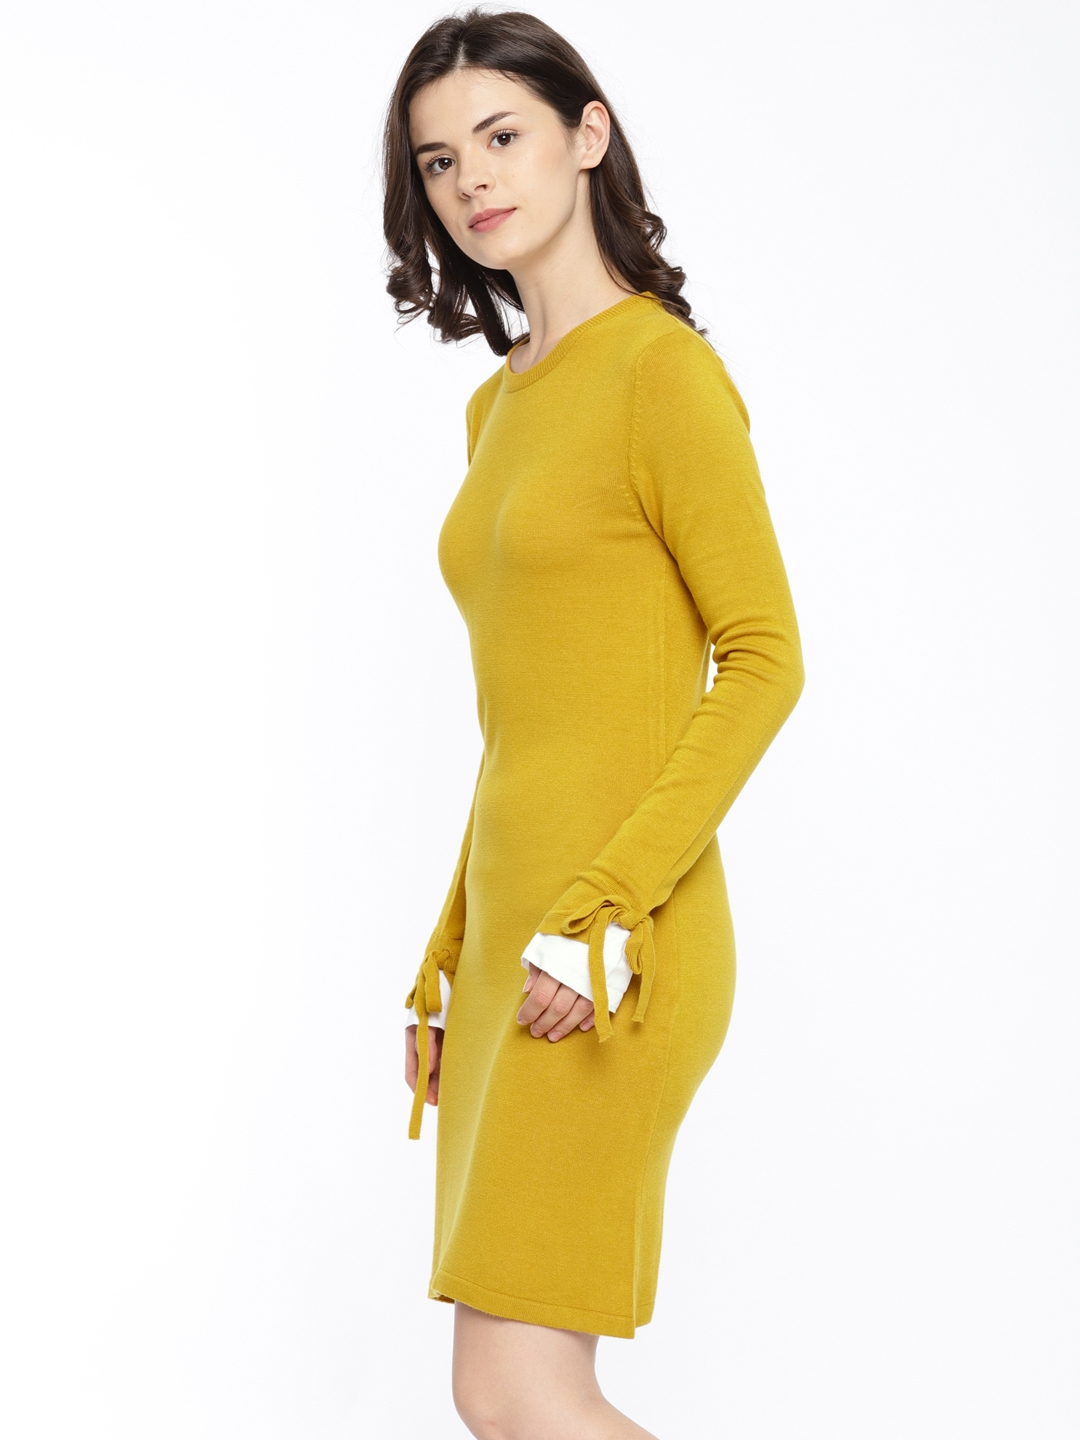 Her Mustard Dress By Women Yellow Sweater Solid Buy Invictus kP8n0wO